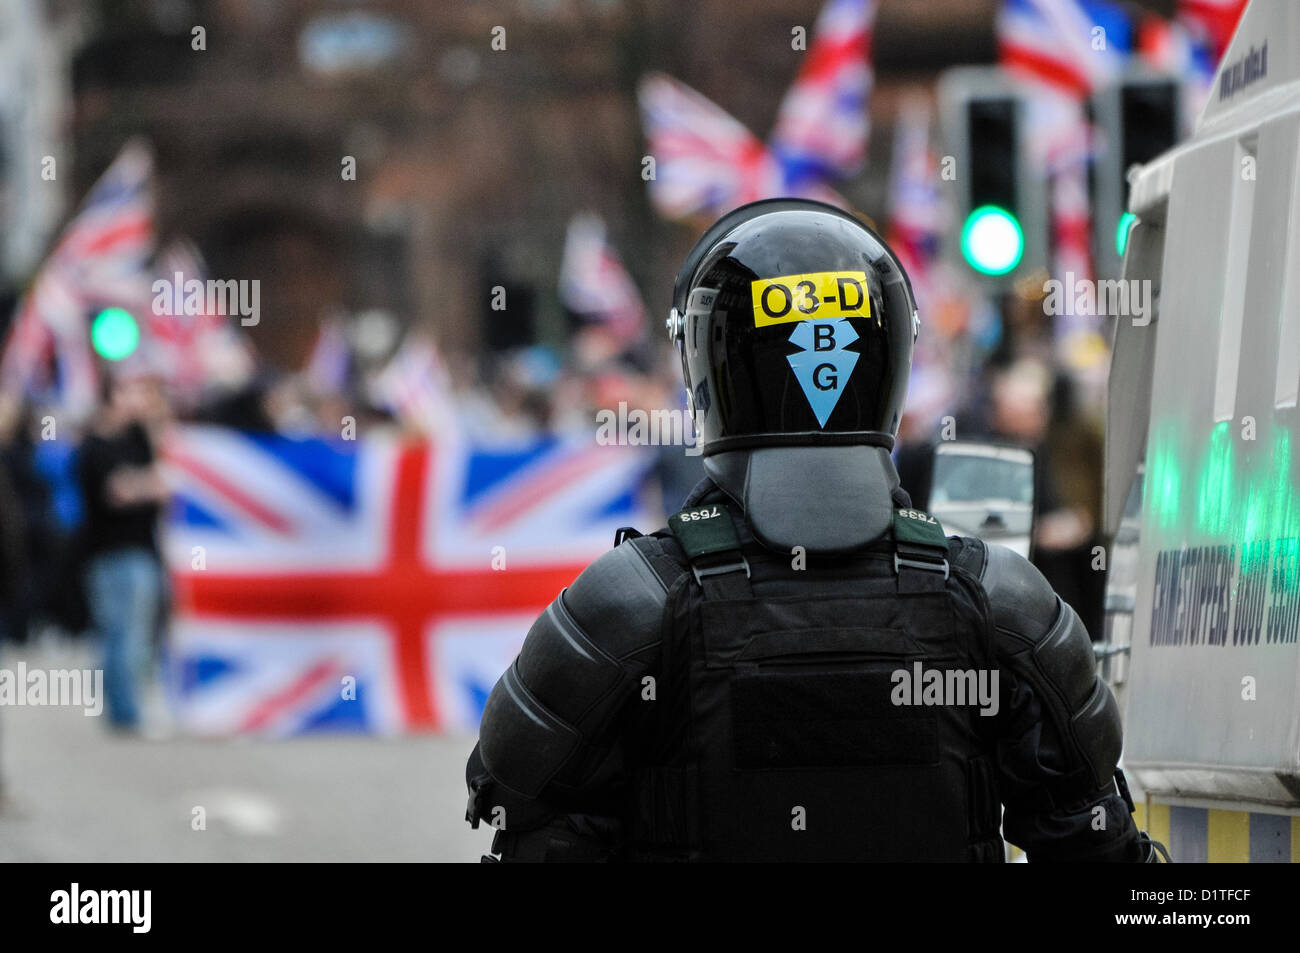 5th January 2013. Belfast, Northern Ireland - A PSNI Officer from the Tactical Support Group (TSG) watches as over - Stock Image